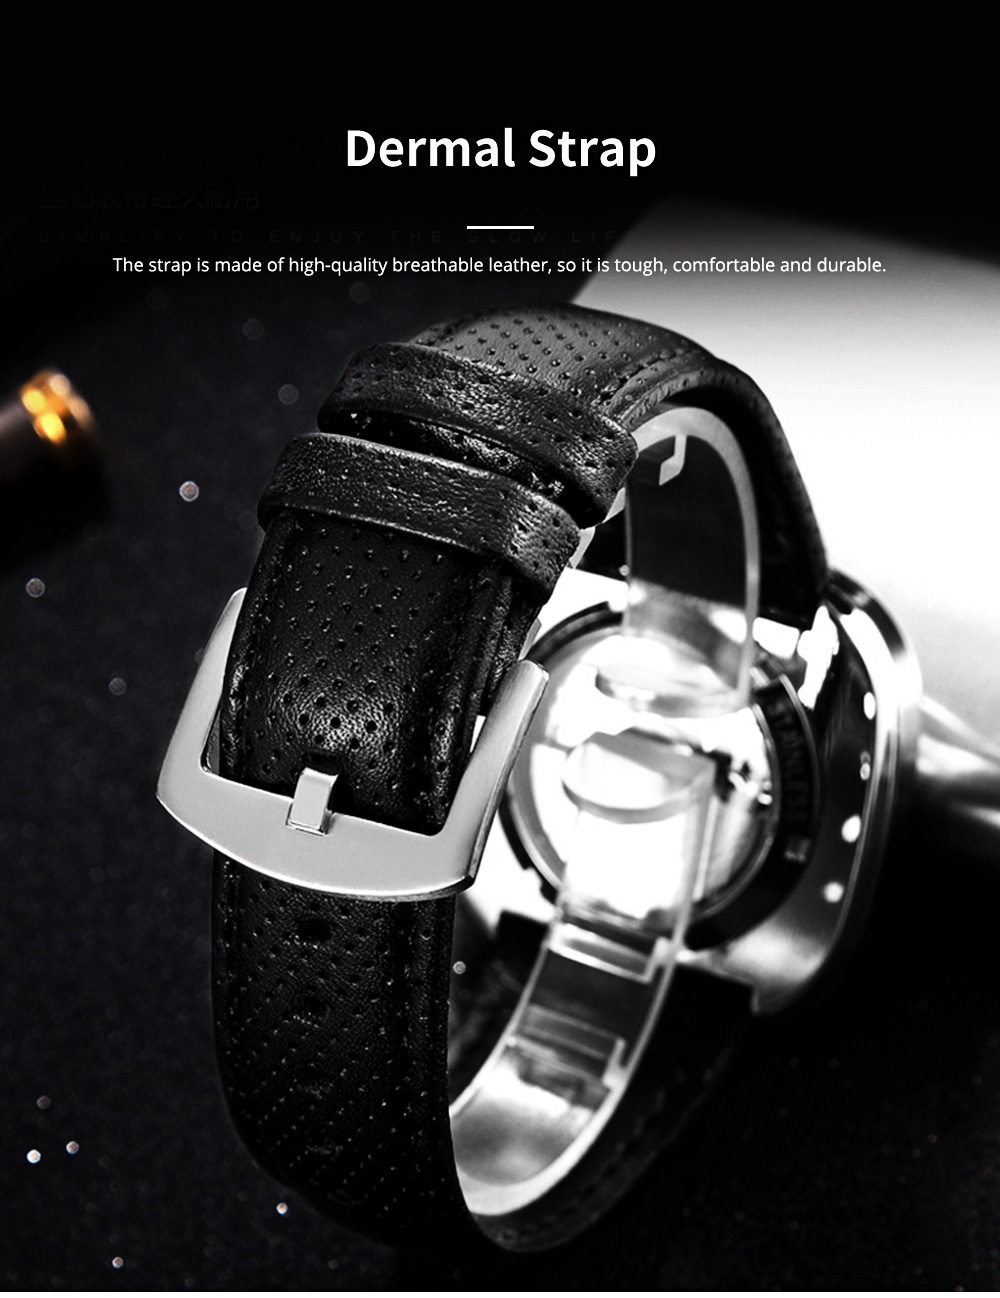 Youth's Watch Square Automatic Mechanical Watch Transparent Hollow Wrist Watch With Genuine Leather Strap 5